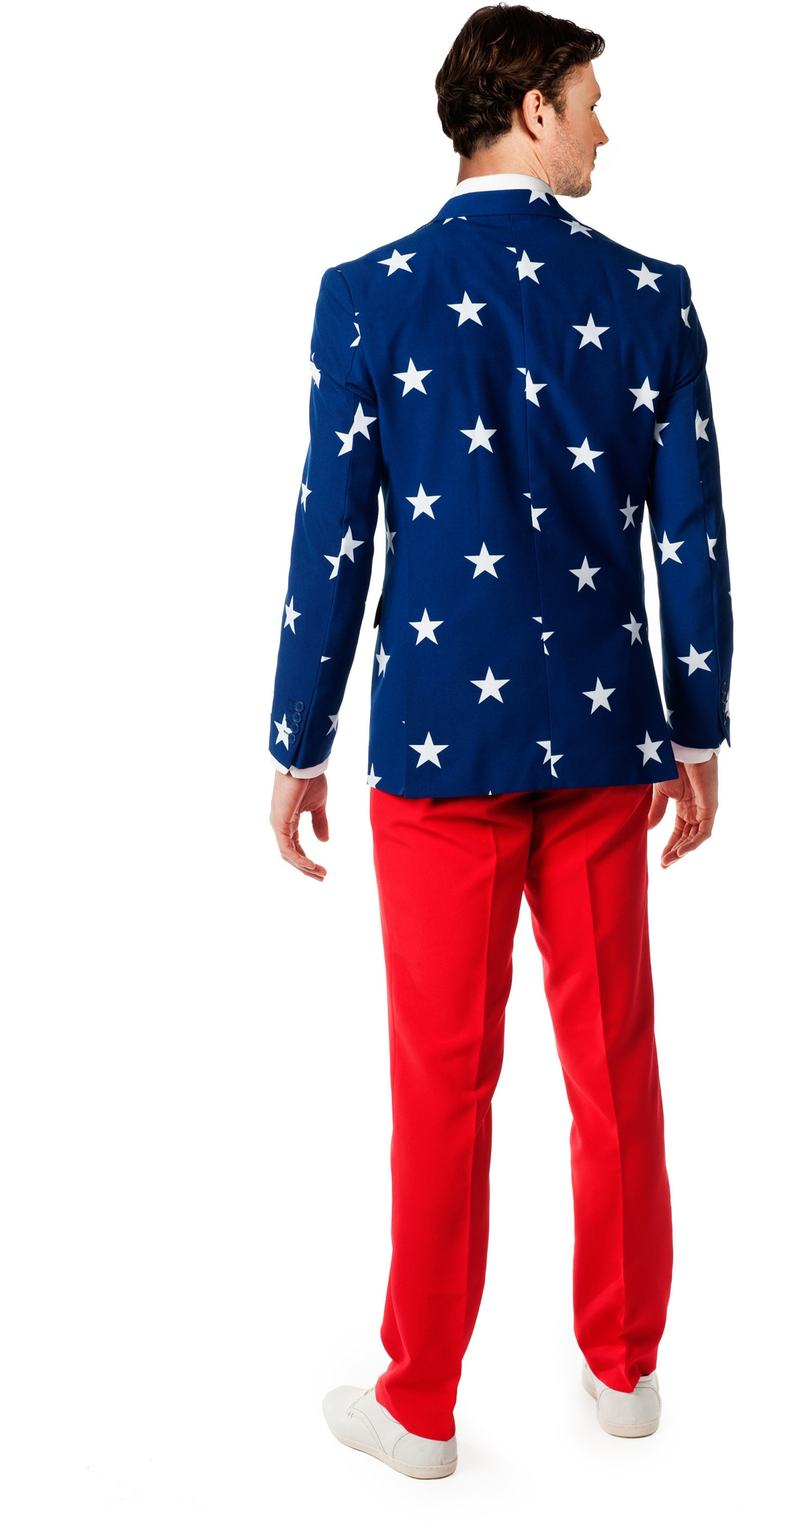 OppoSuits Stars and Stripes Kostüm Foto 1